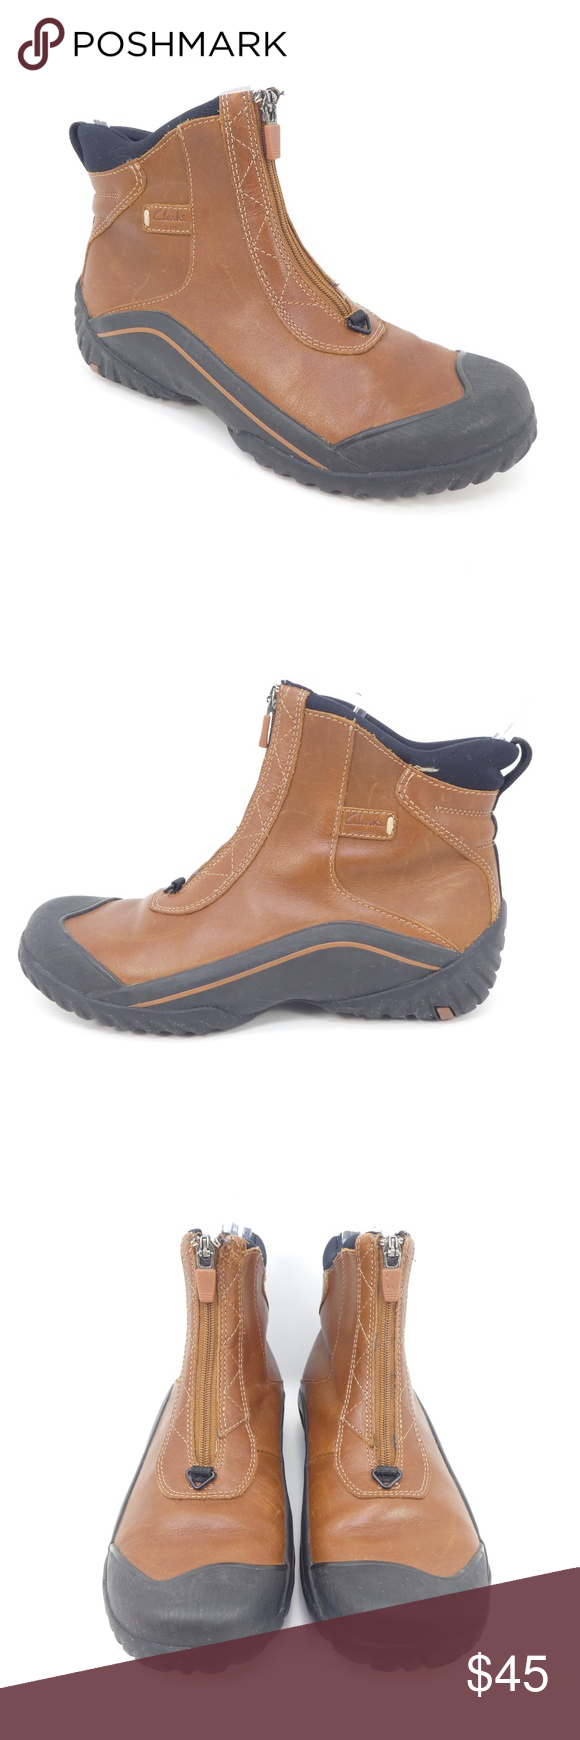 Clarks Muckers Waterproof Leather Ankle